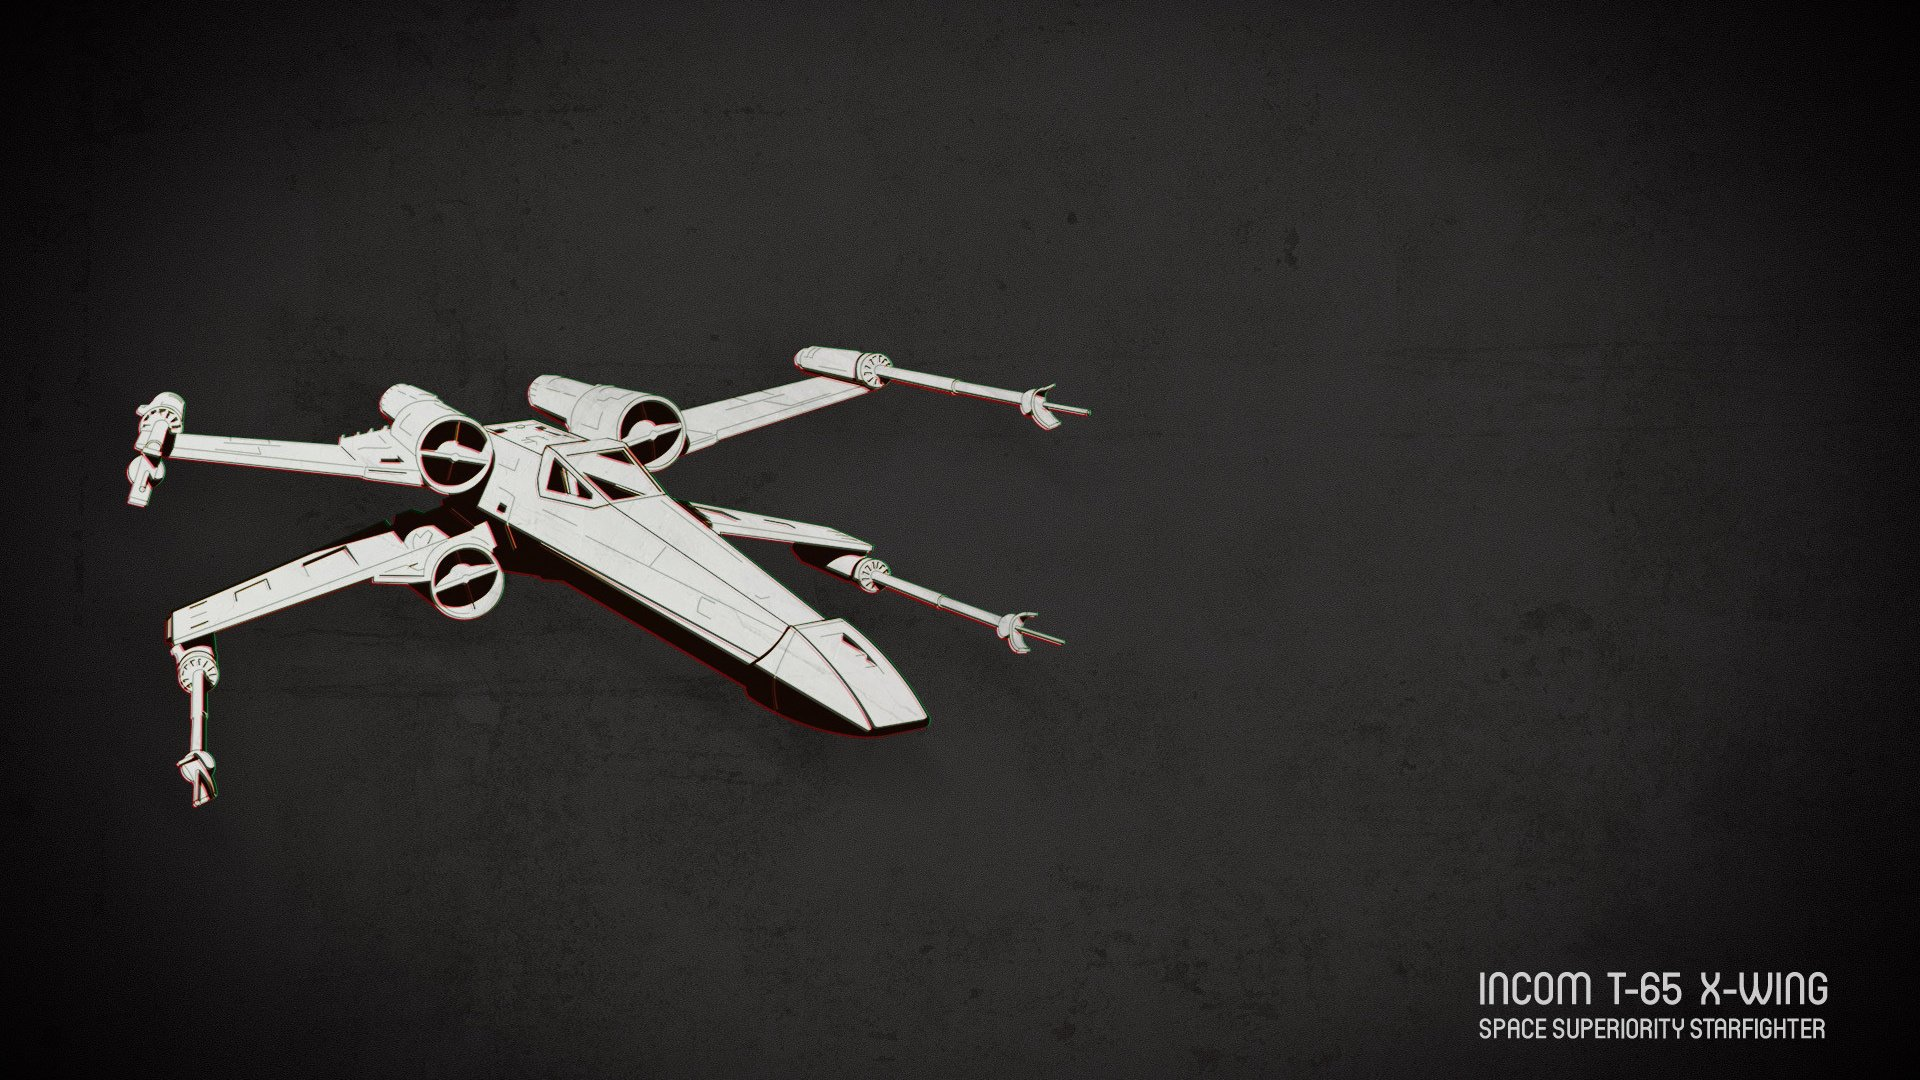 Star Wars X Wing Vs Tie Fighter Hd обои фон 1920x1080